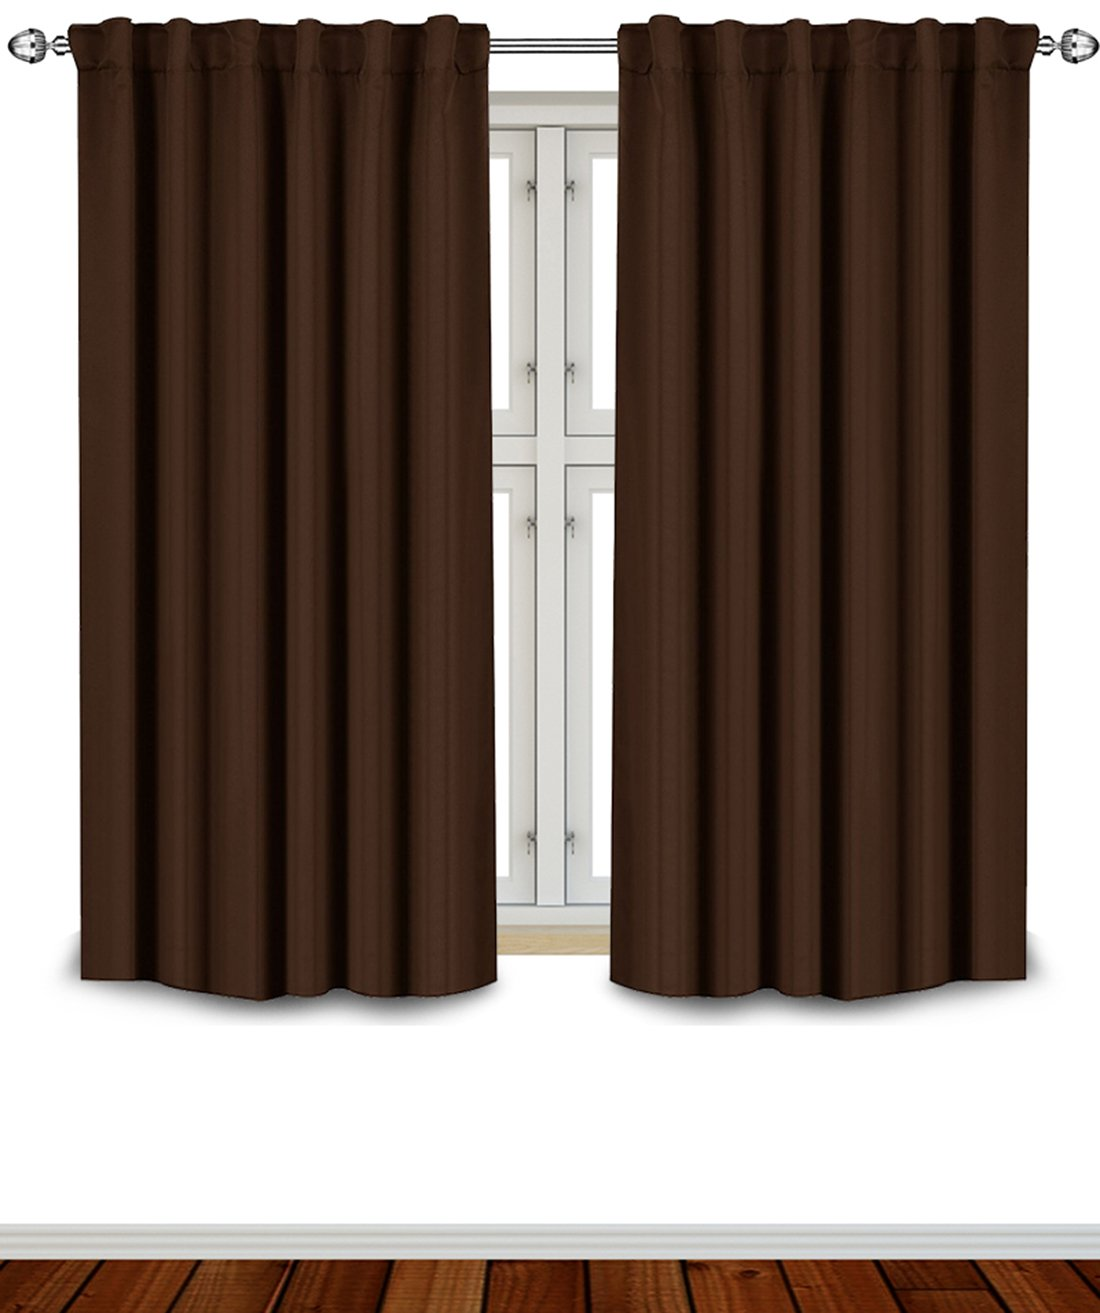 patio steps thecurtainshop drapes curtains spanish panel grommet door com